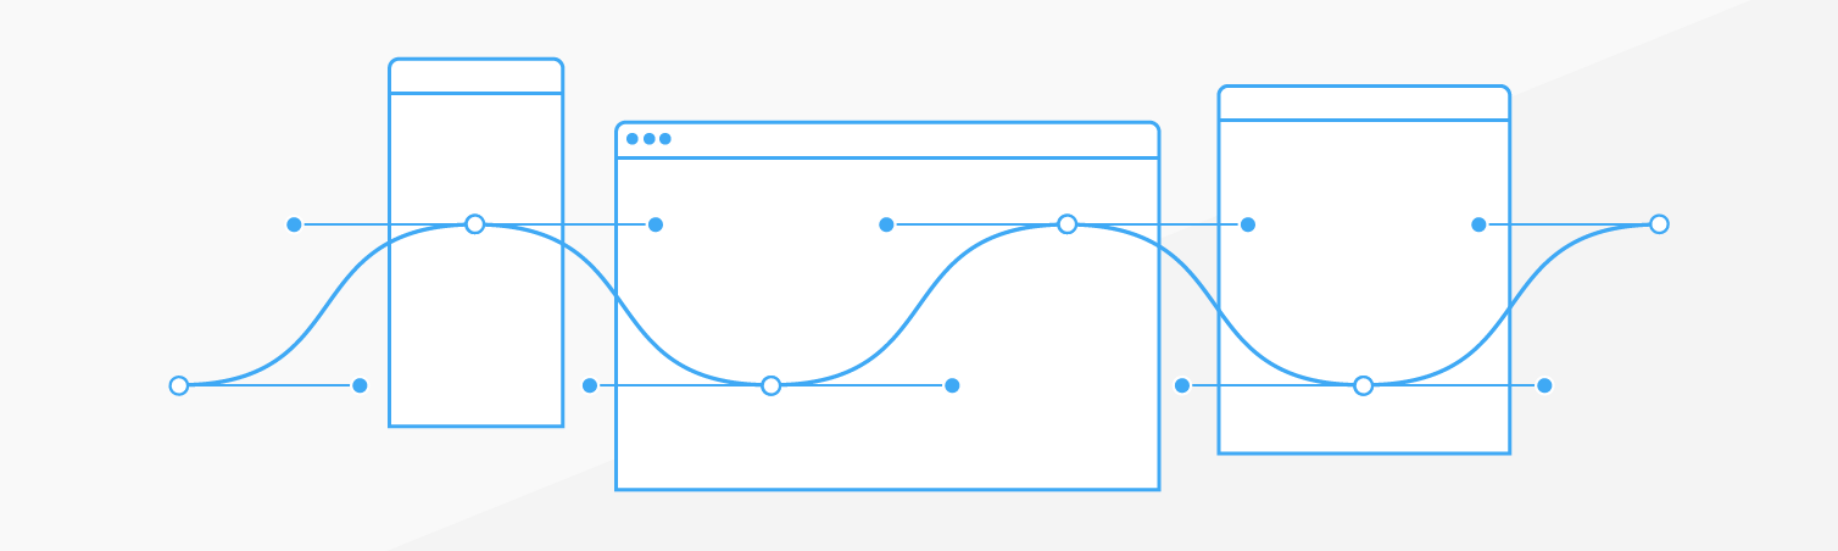 Crafting Easing Curves for User Interfaces - Ryan Brownhill